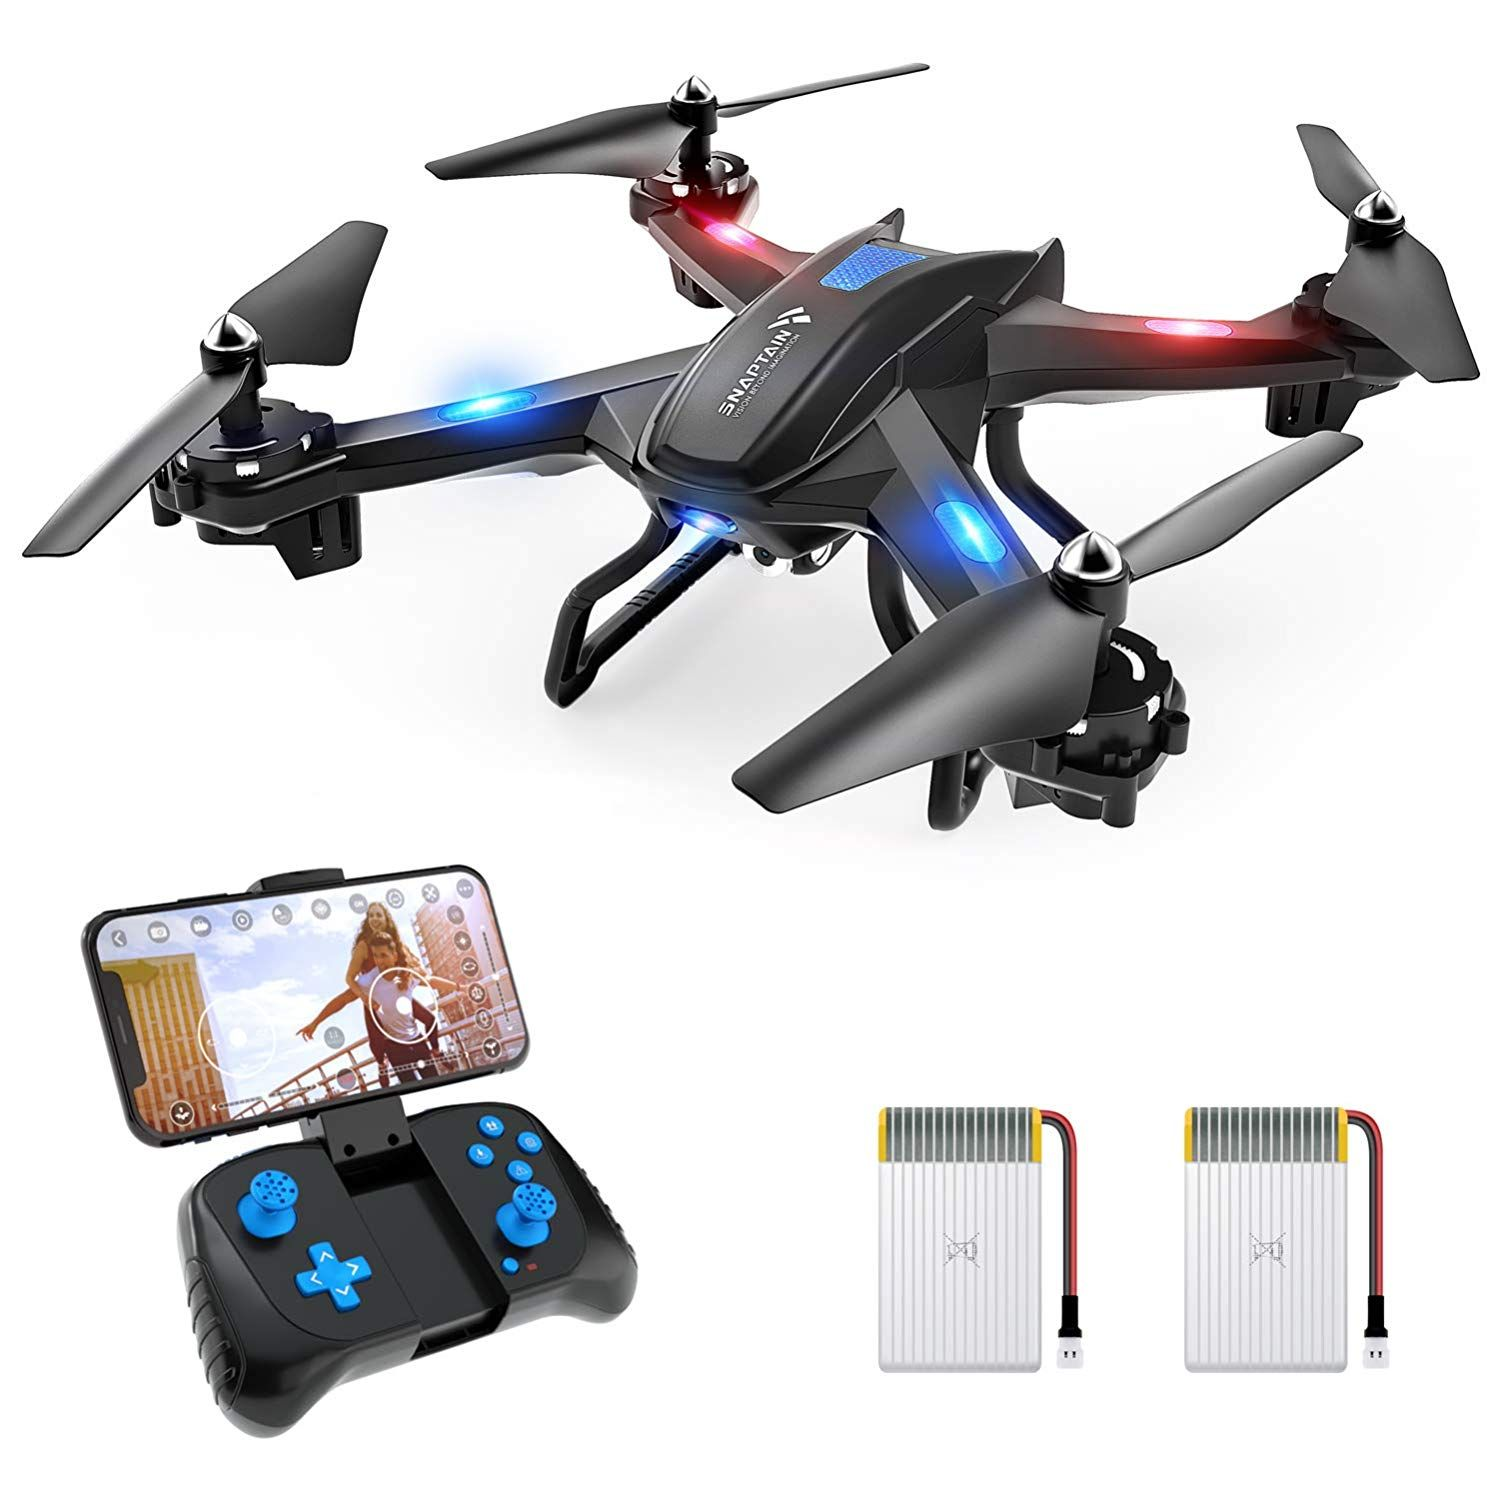 Photo of SNAPTAIN S5C WiFi FPV Drone with 720P HD Camera, Voice Control, Gesture Control RC Quadcopter for Beginners with Altitude Hold, Gravity Sensor, RTF One Key Take Off/Landing, Compatible w/VR Headset – Walmart.com